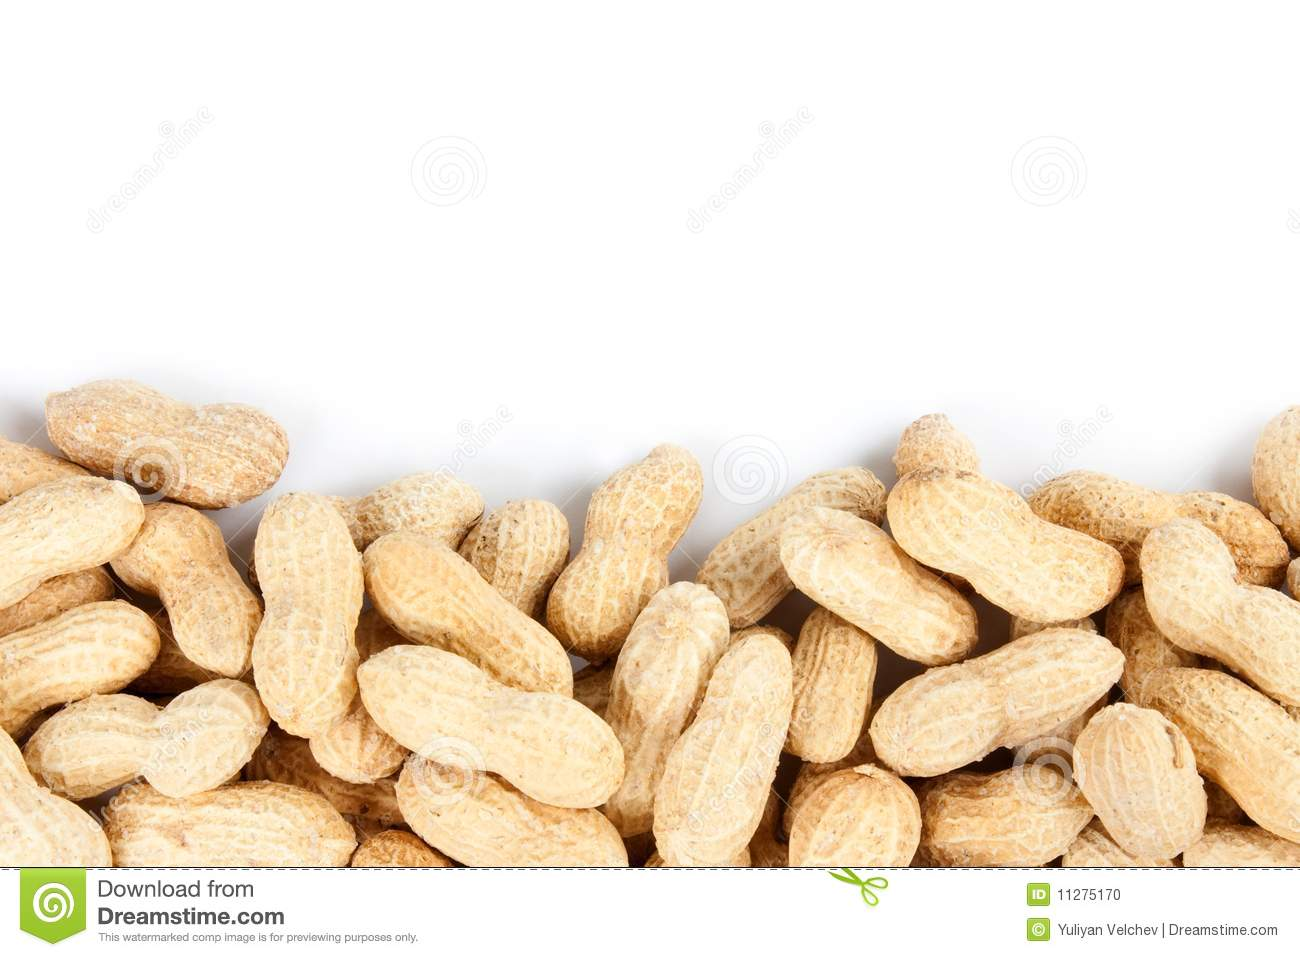 Peanuts border isolated on a white background.